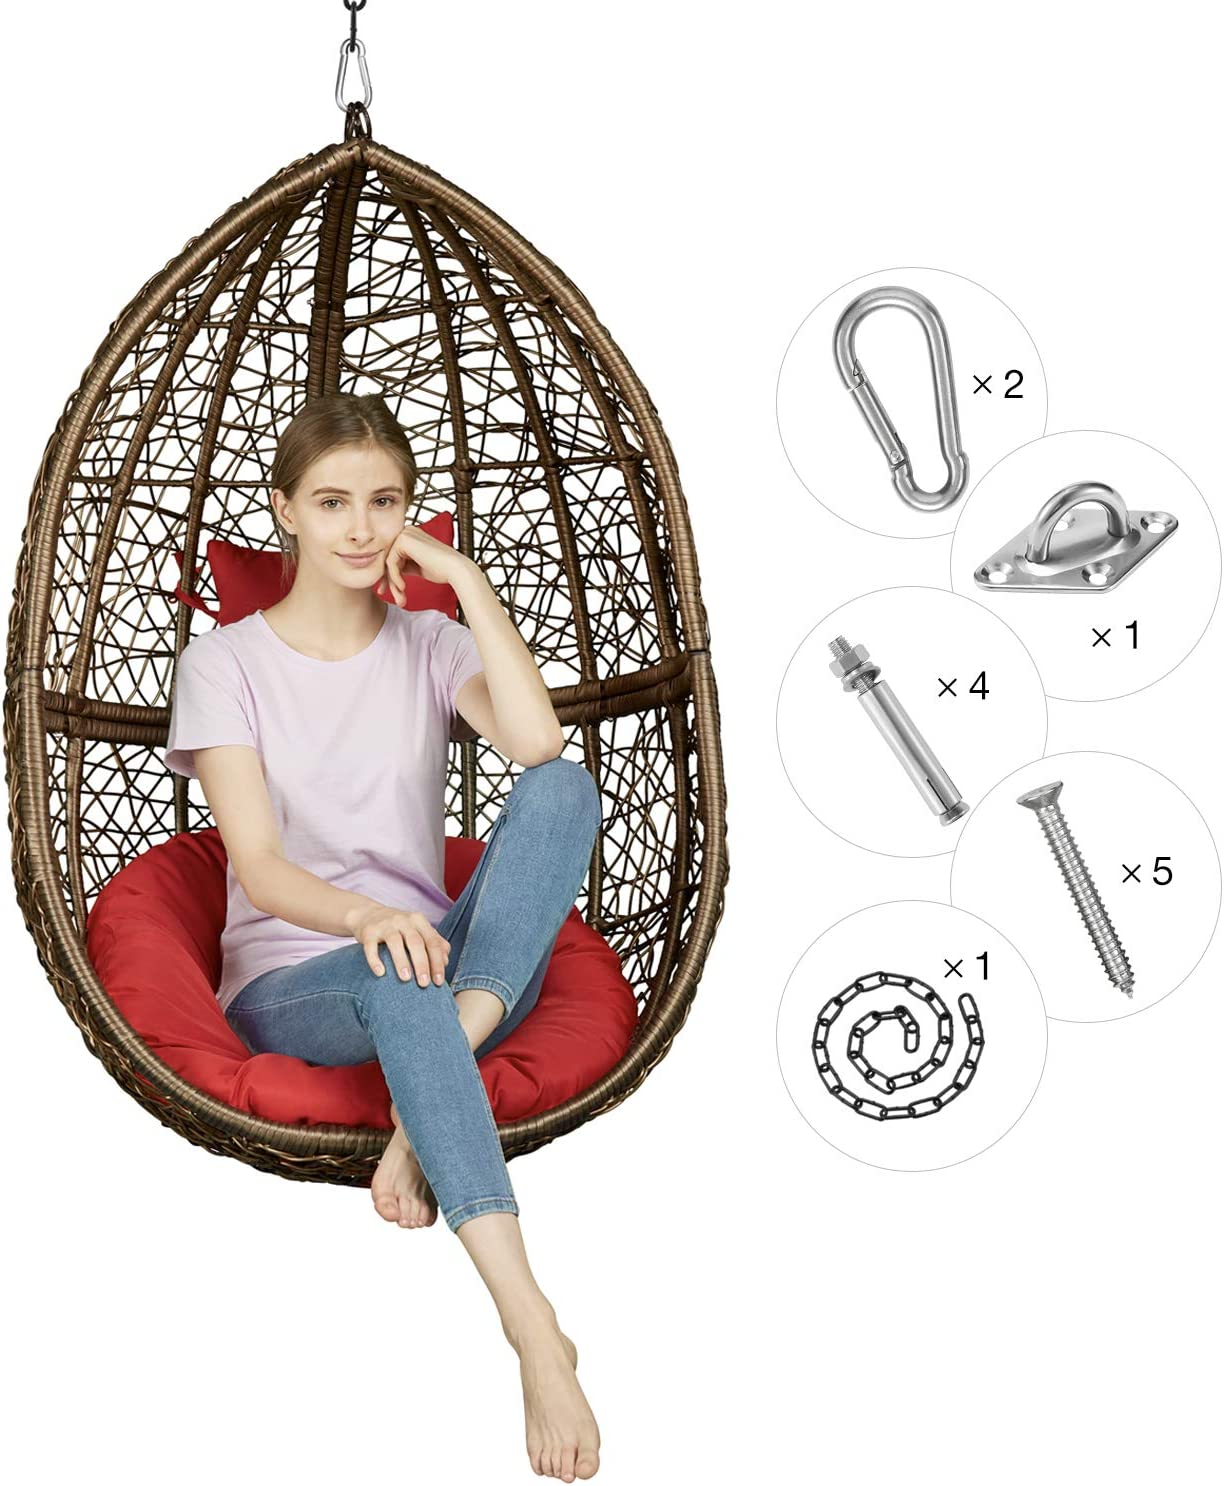 10 Best Hanging Egg Chair Reviews Top Picks Of 2020